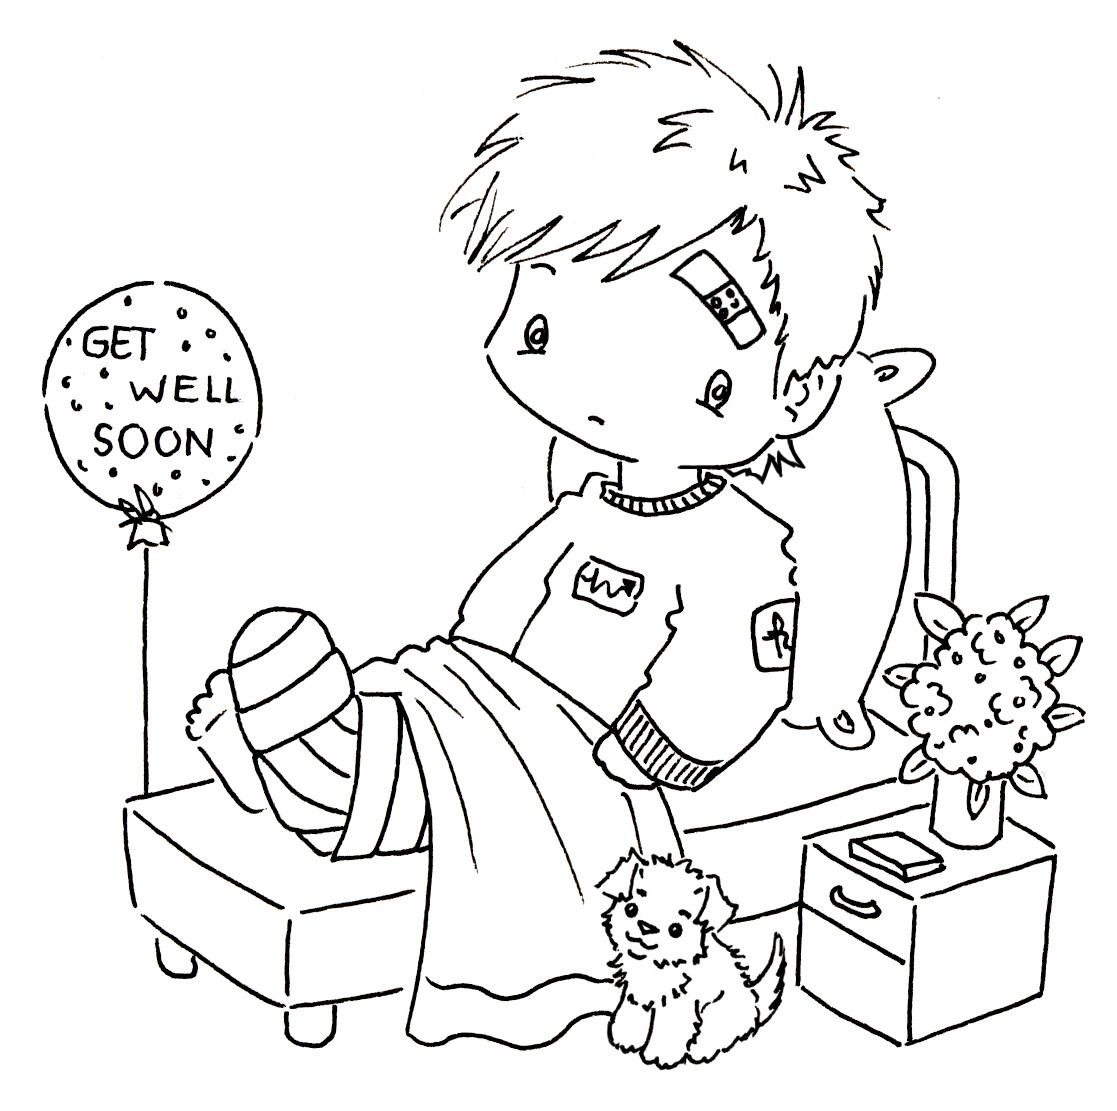 Get Well Card Coloring Page At Getcolorings